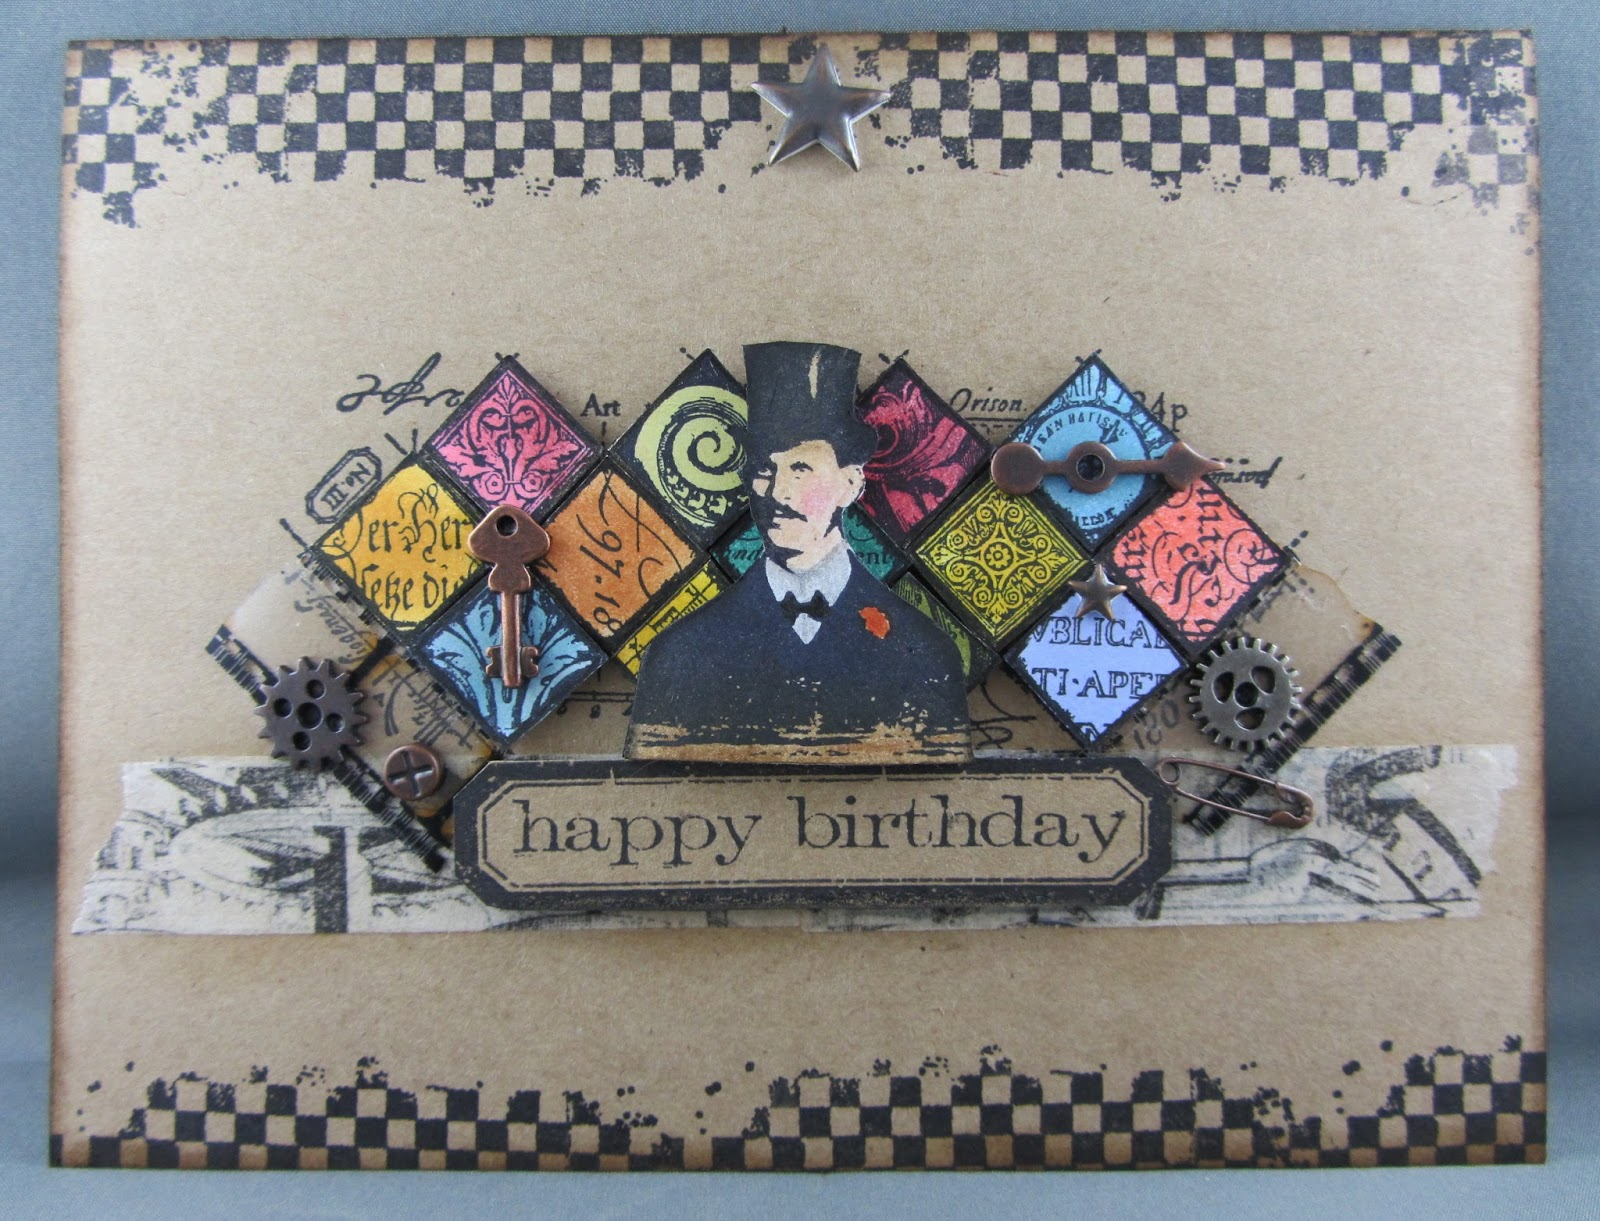 Scraps From A Broad Manly Birthday Card – Manly Birthday Cards